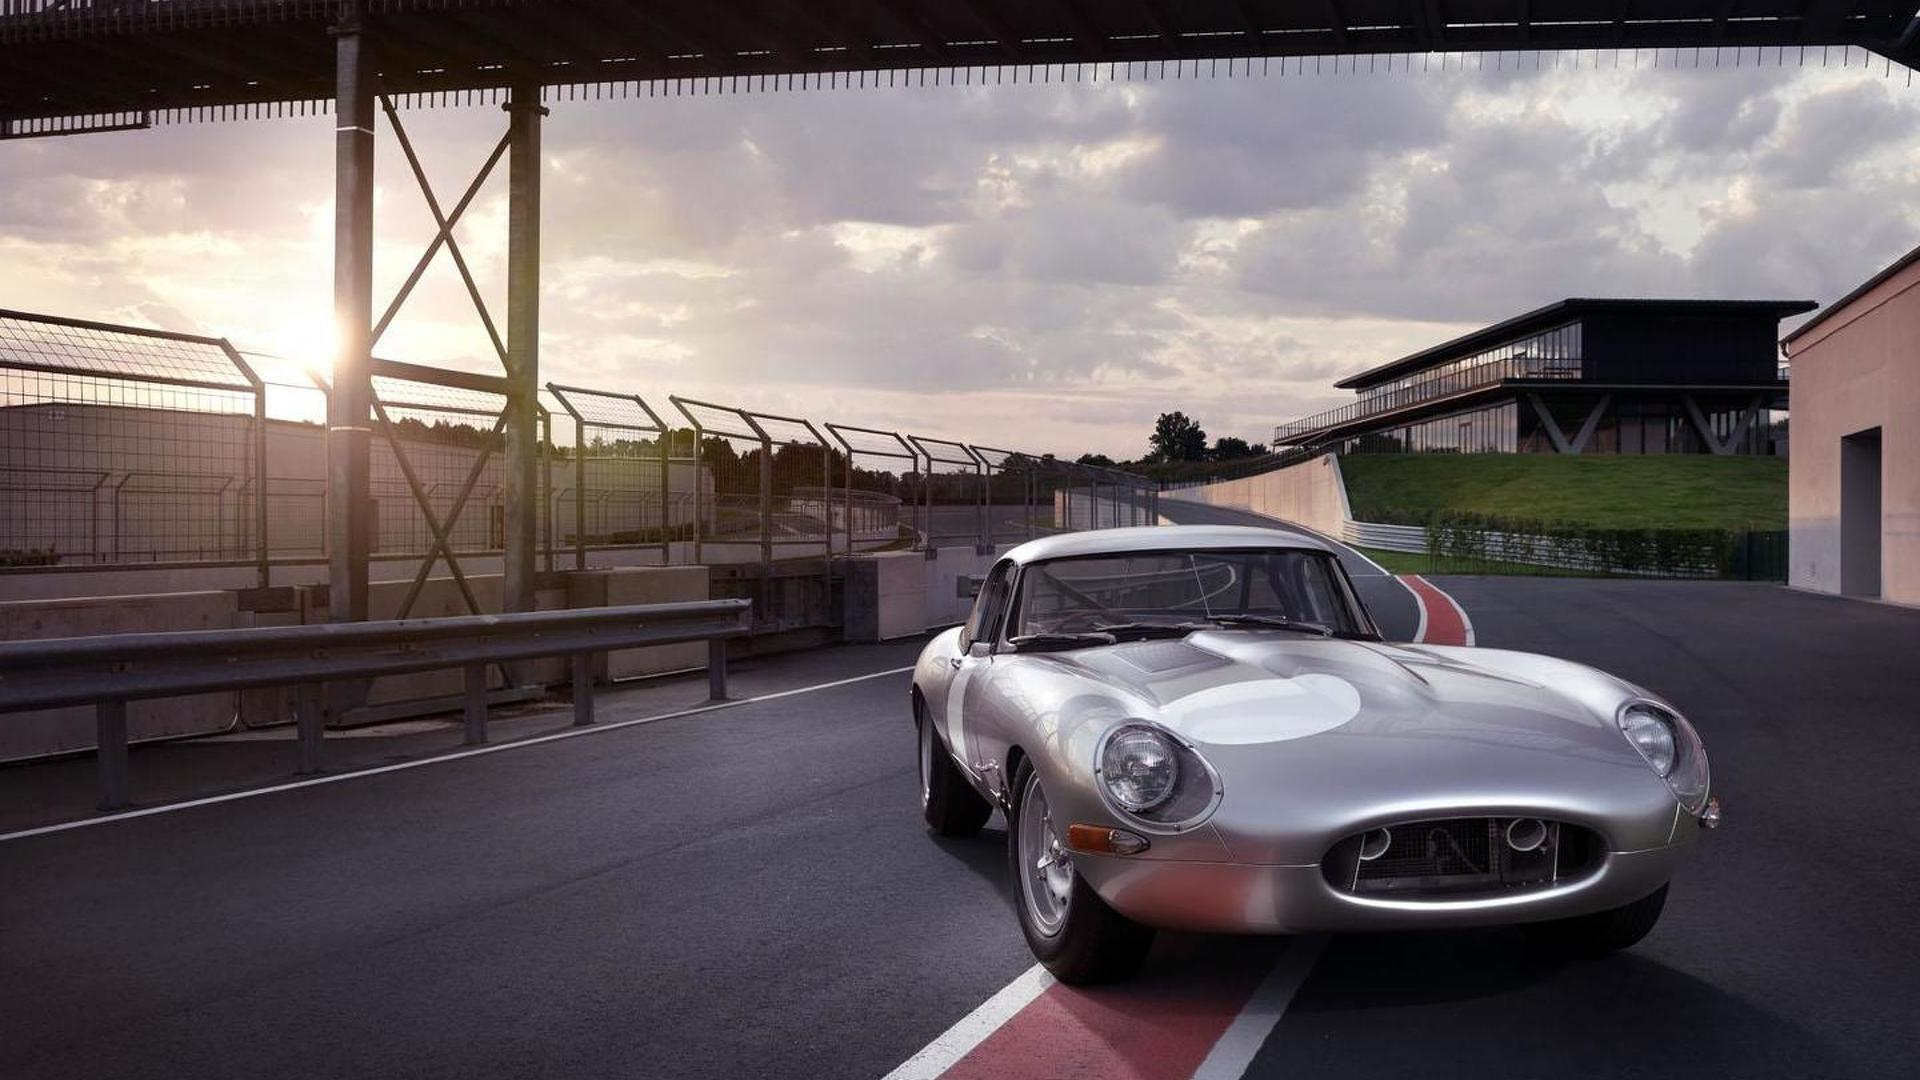 Jaguar Heritage Driving Experience announced, will allow participants to drive classic models